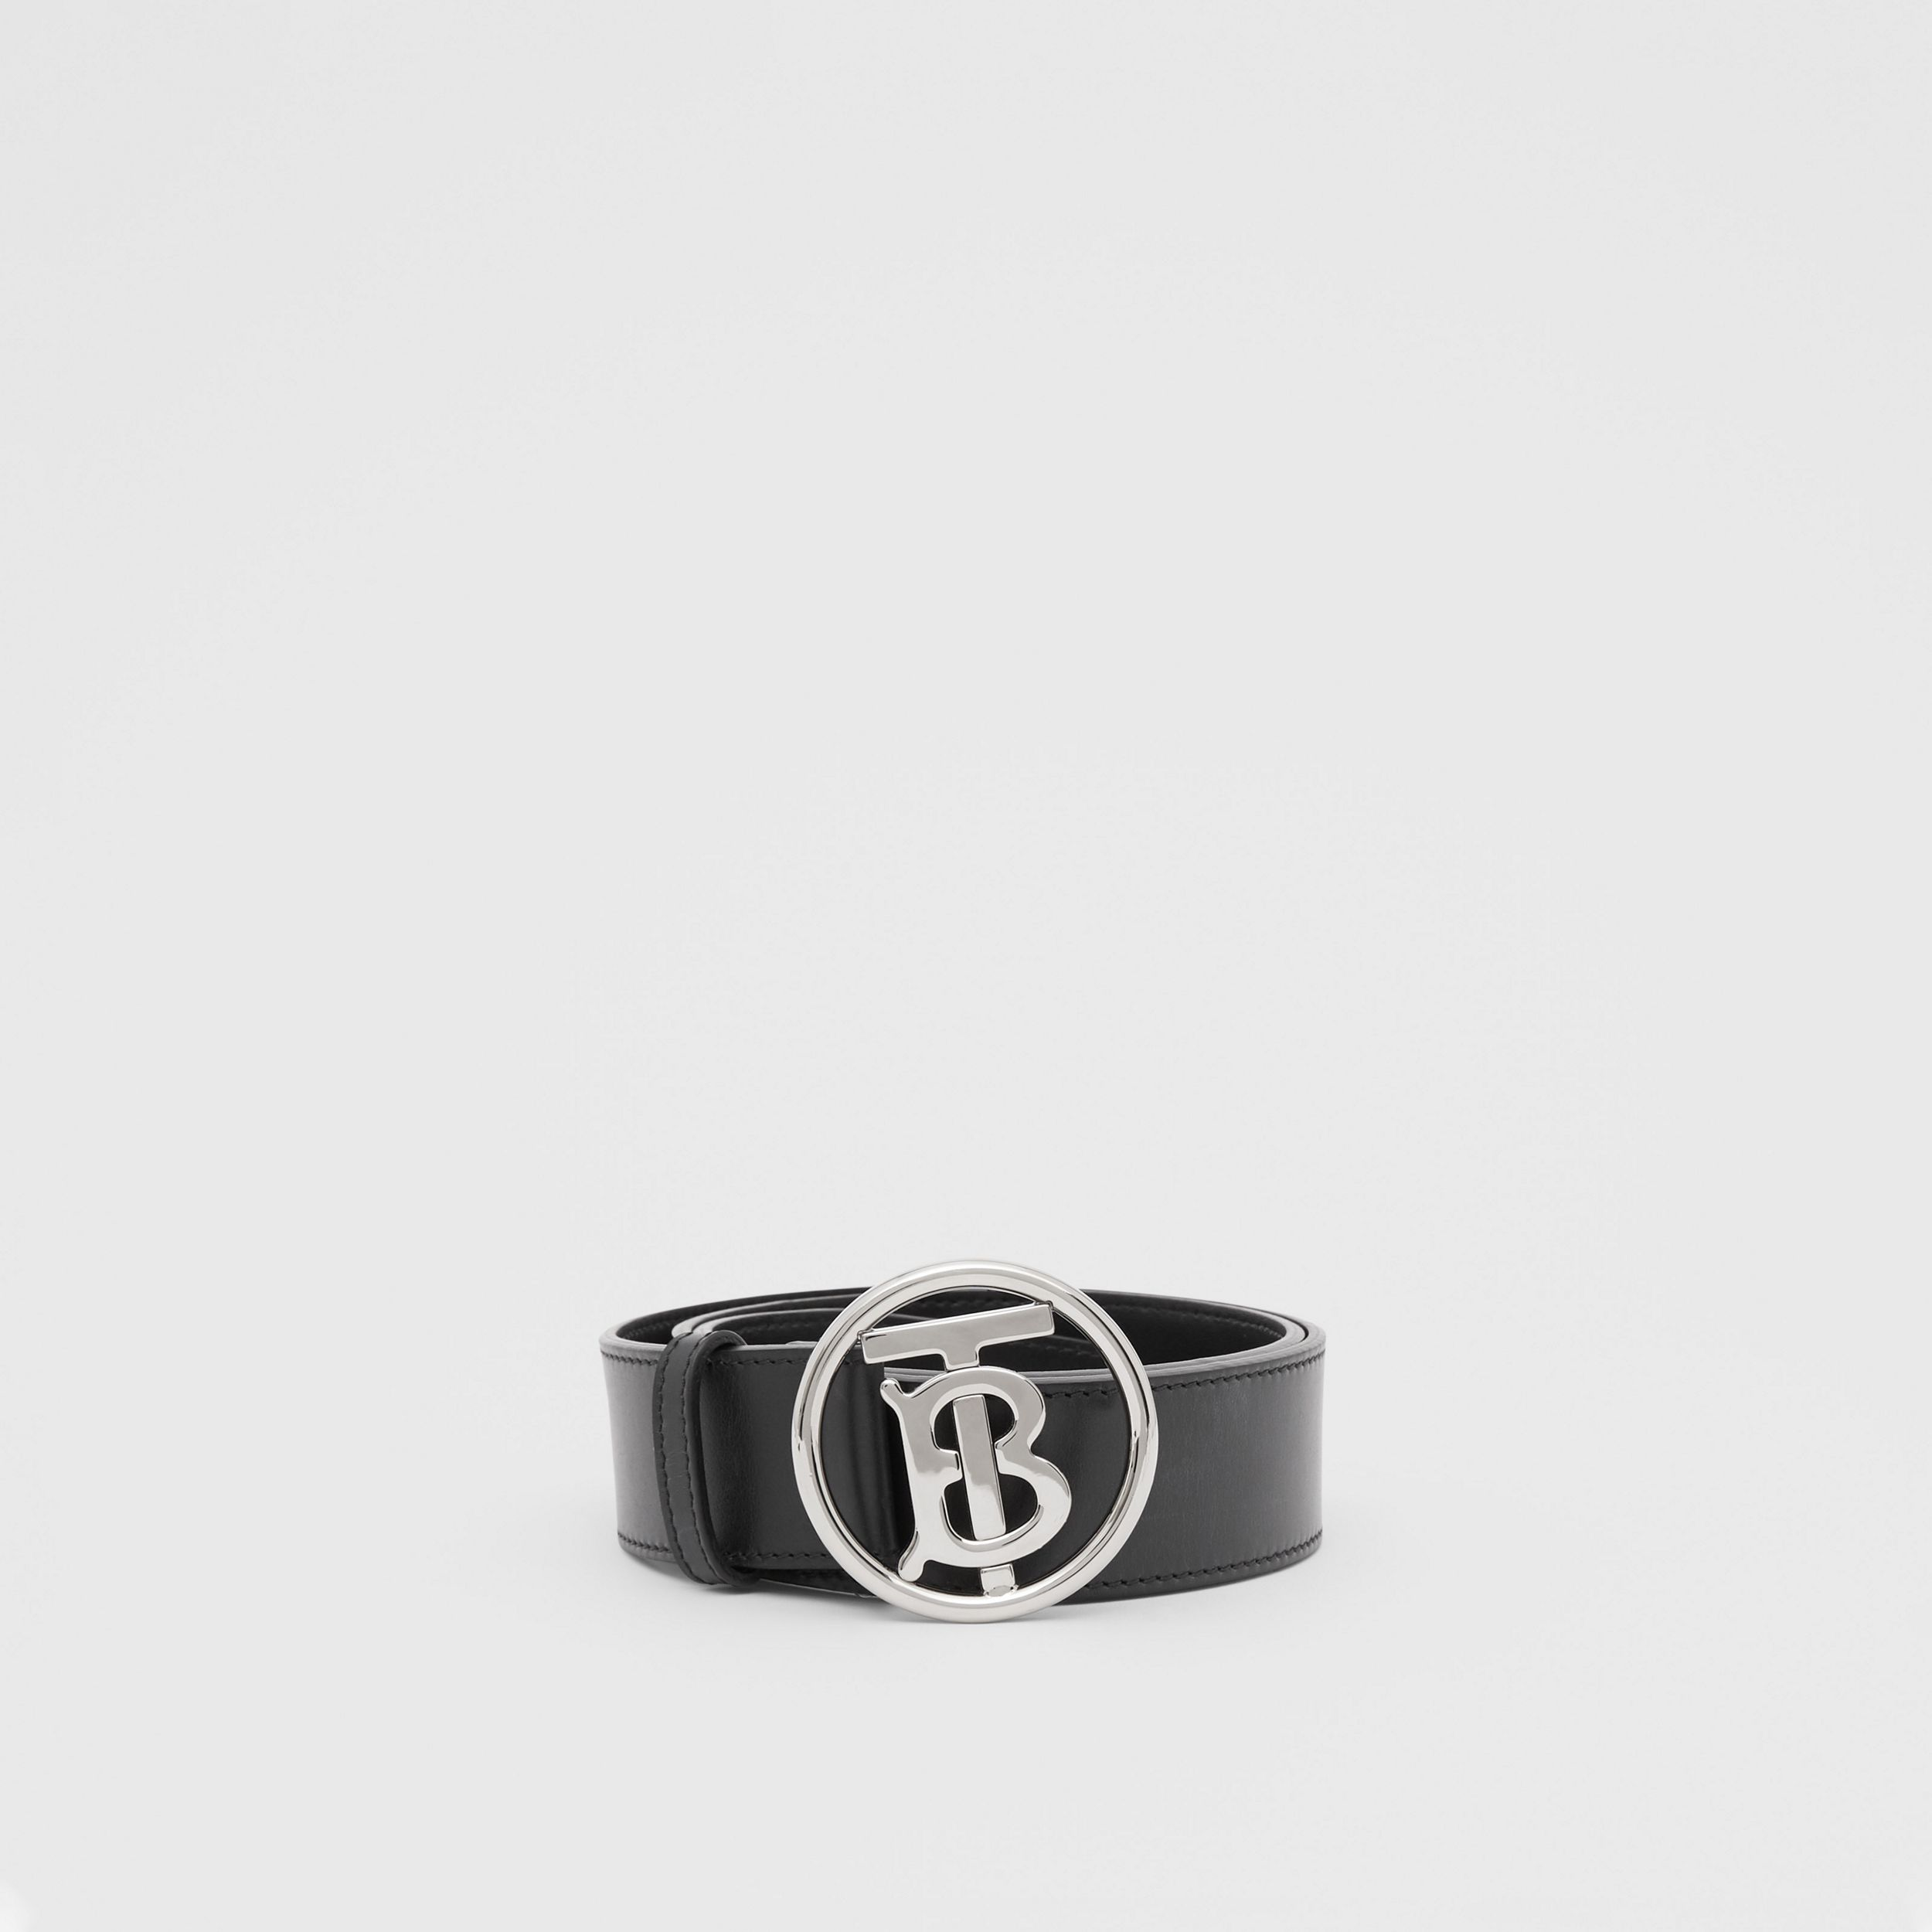 Monogram Motif Leather Belt in Black - Men | Burberry - 3